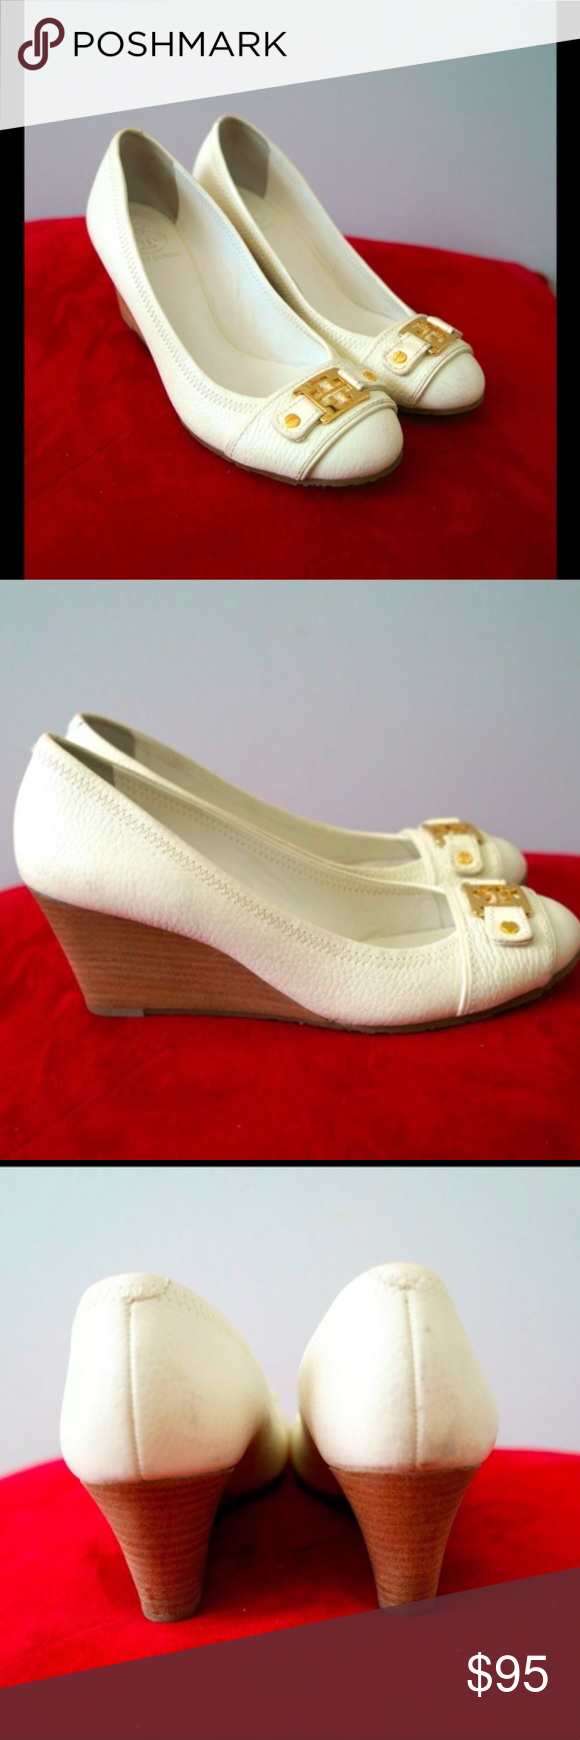 dbd5aec2d346d Tory Burch Natalya mid wedge white heels White tumbled leather with gold  medallions. Size 7.5